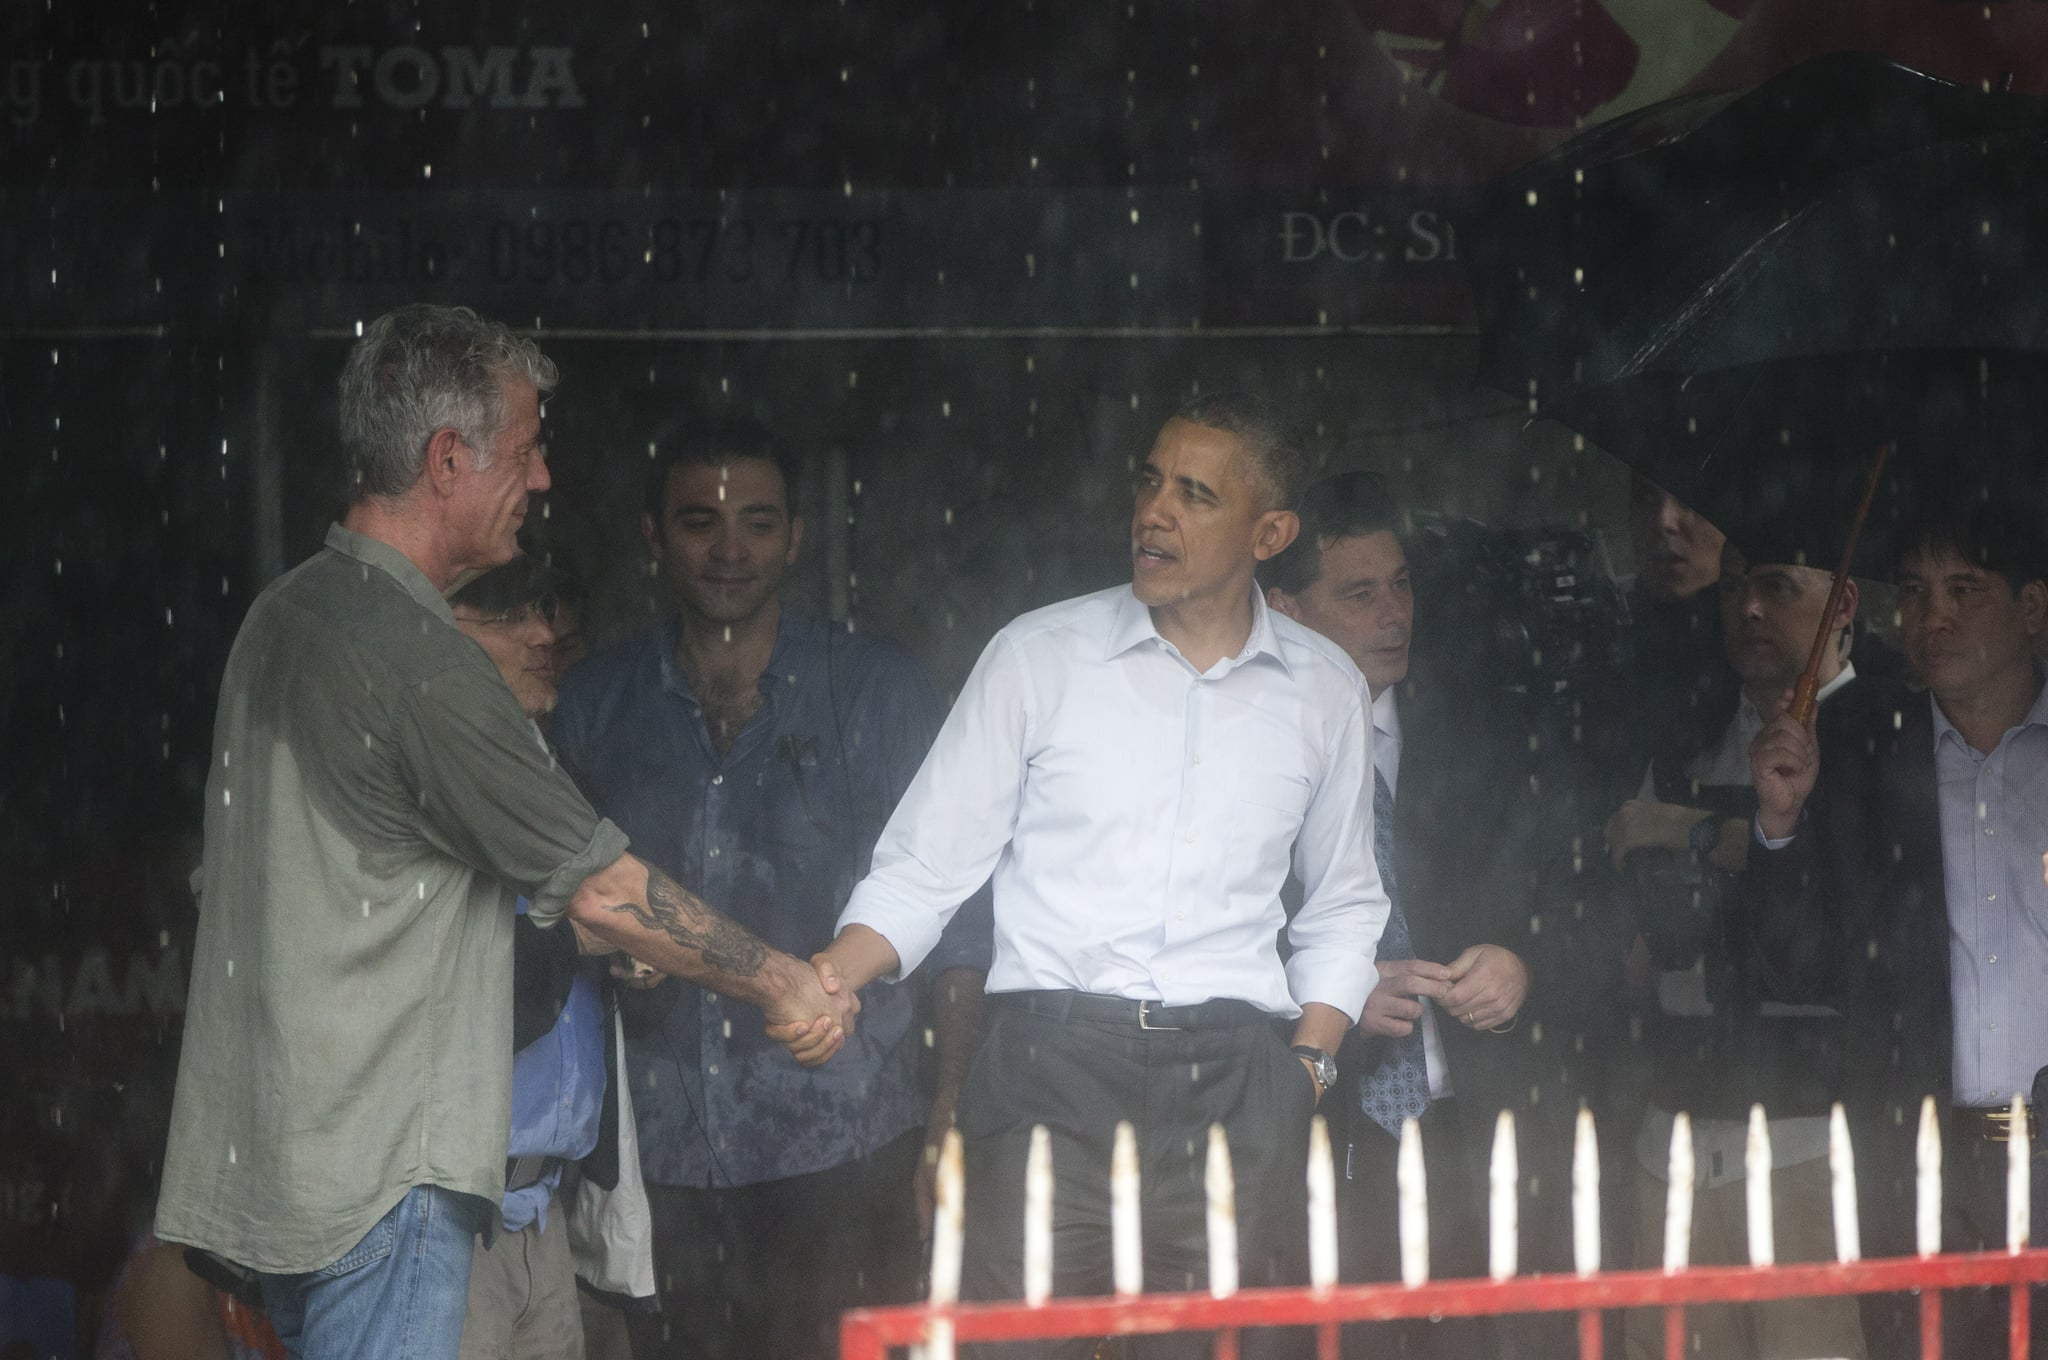 U.S. President Barack Obama shakes hands with American Chef Anthony Bourdain after visiting with him in a shopping area in Hanoi, Vietnam, Tuesday, May 24, 2016. President Barack Obama taped the second part of an interview with CNN personality Anthony Bourdain before leaving the Vietnamese capital for Ho Chi Minh City on Tuesday. (AP Photo/Carolyn Kaster)